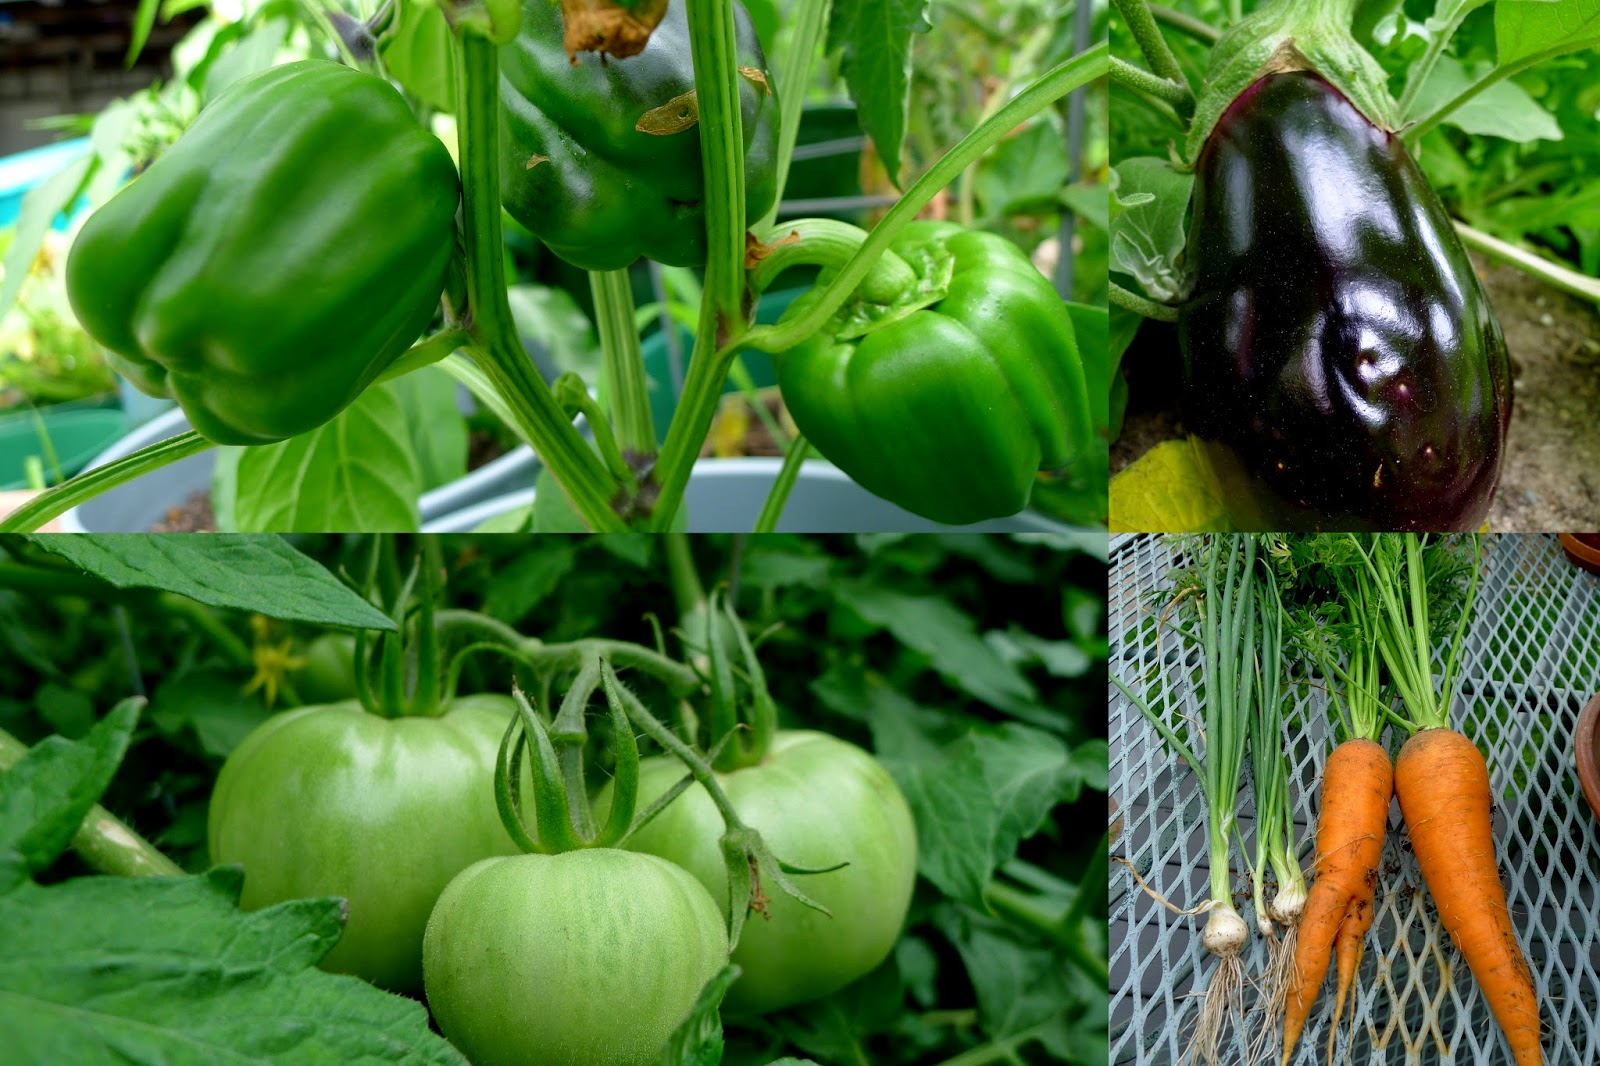 Summer produce, urban farming